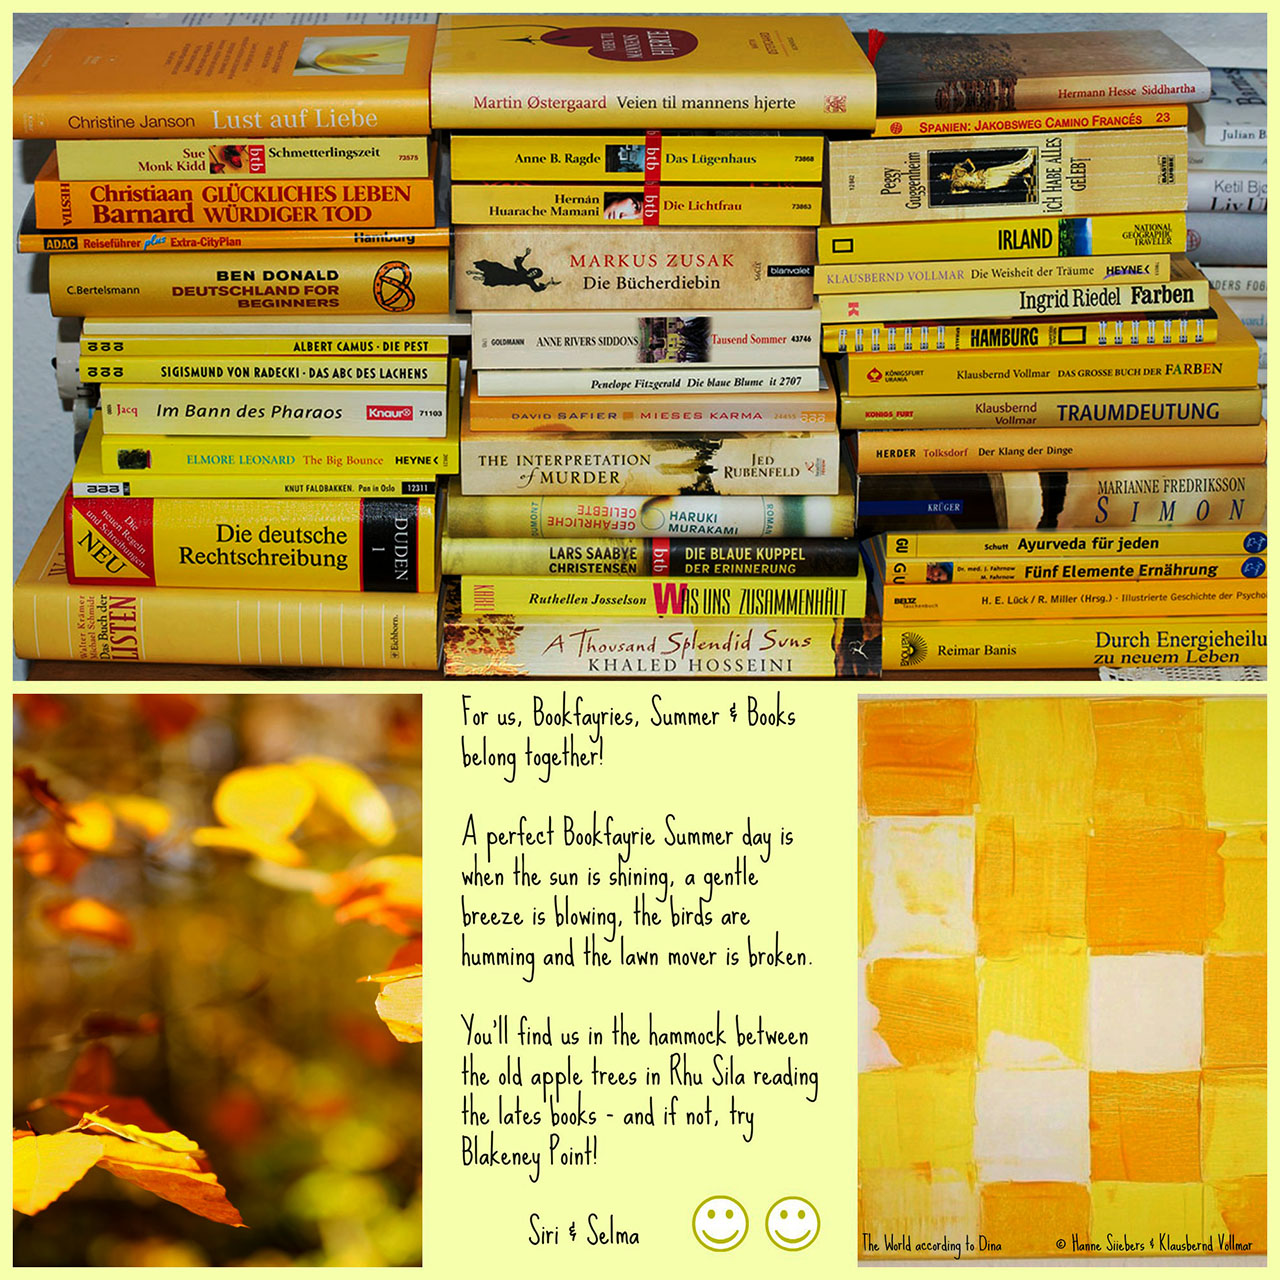 Hanne Siebers_yellowbooks_klein